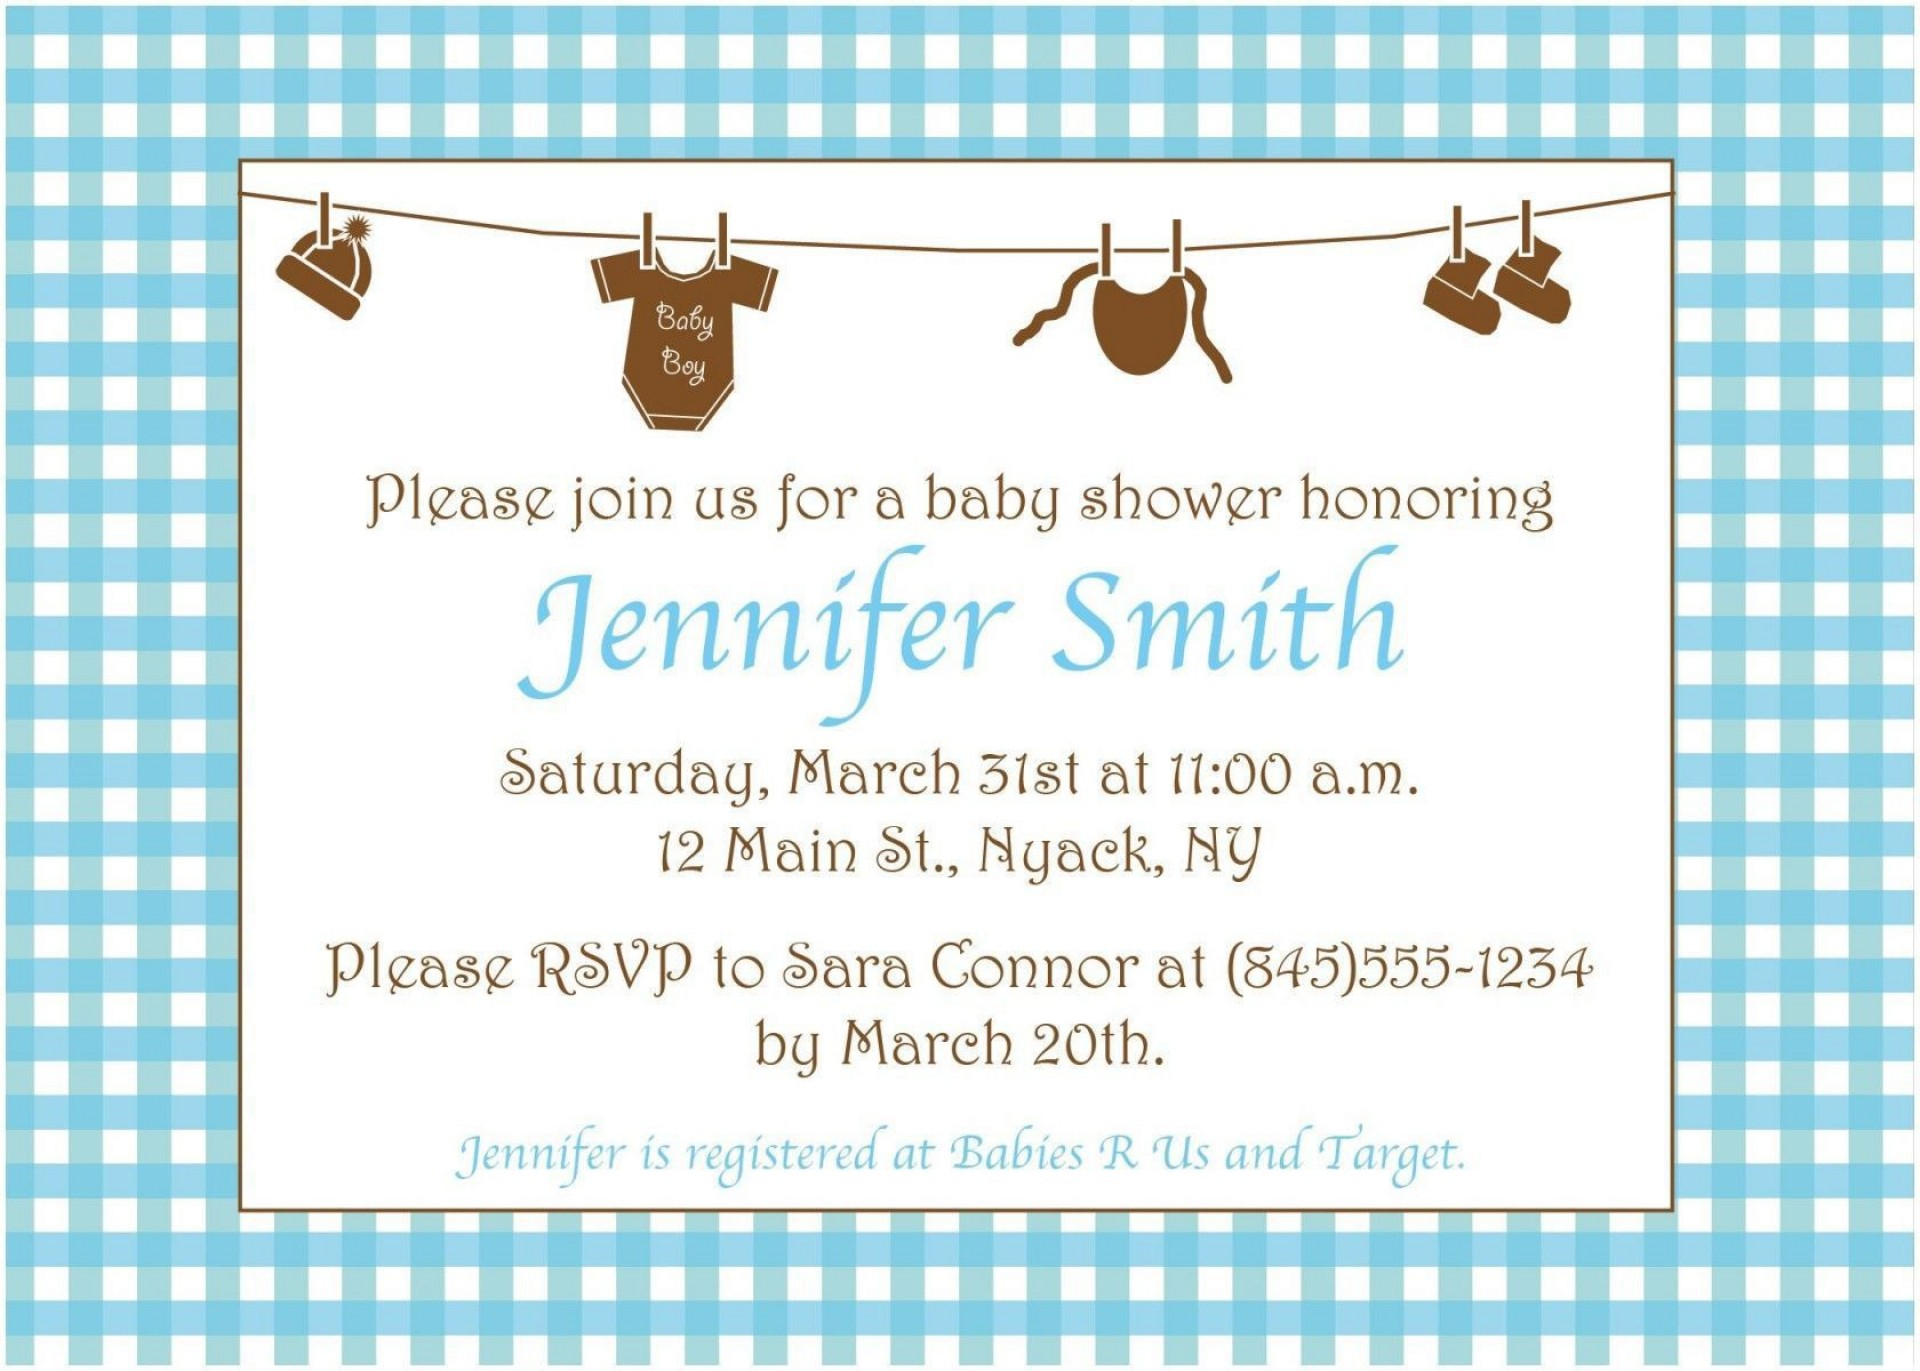 005 Surprising Baby Shower Invitation Wording Example Highest Quality  Examples Invite Coed Idea For Boy1920